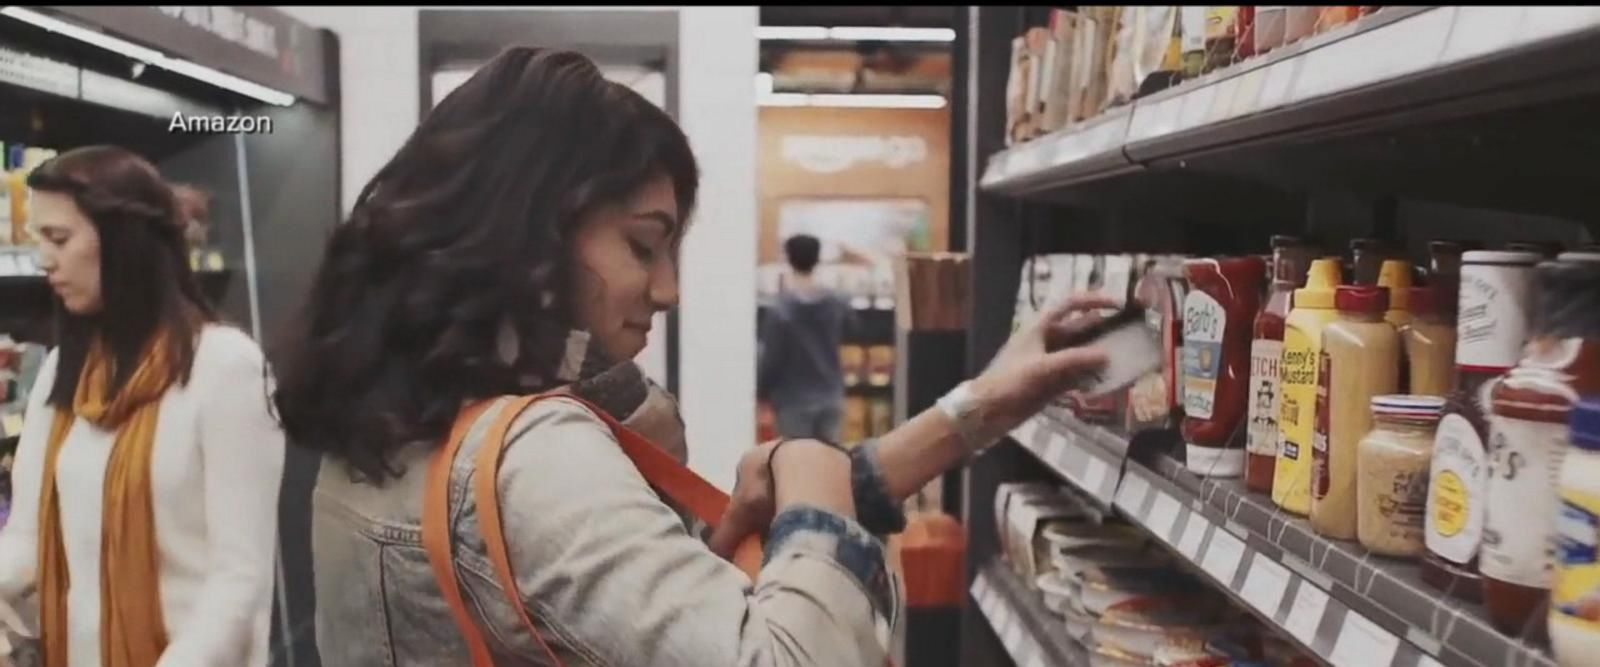 VIDEO: Amazon Go store allows shoppers cashier-free convenience